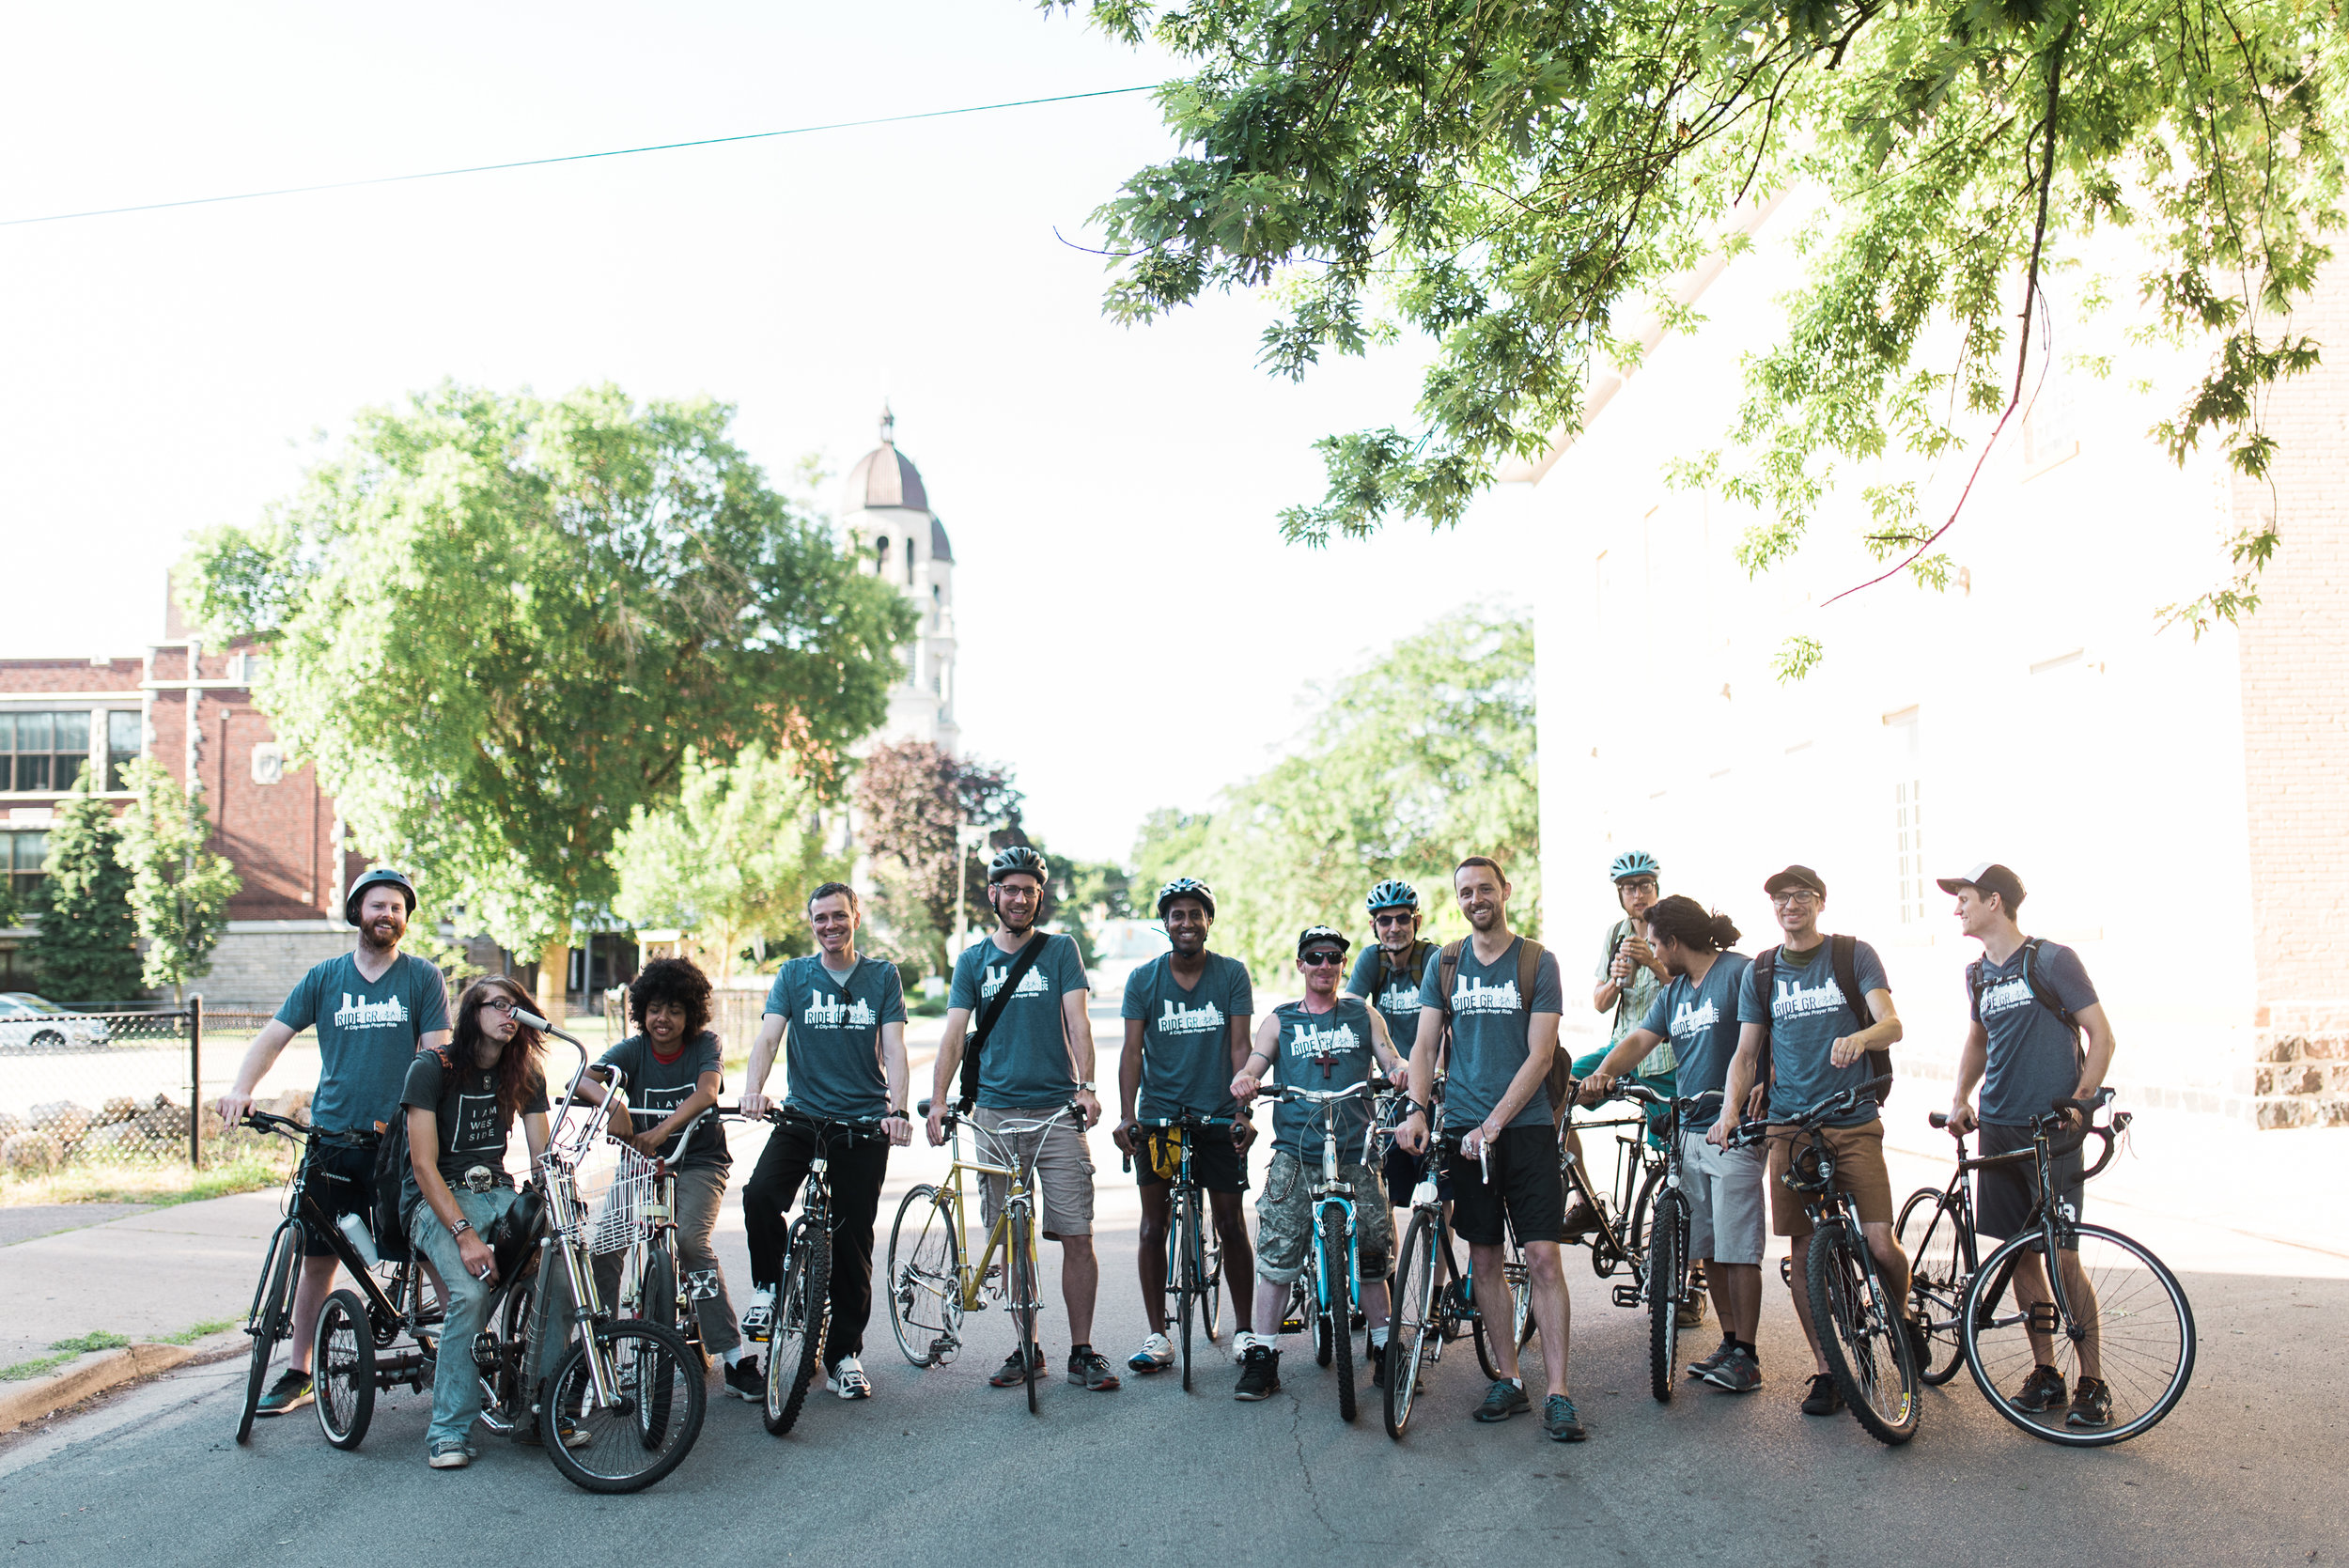 The RIDE GR prayer ride crew of 2017, made up of leaders and members of five different churches, including 5th Reformed Church, Good News Gatherings, Pentecostals of Kentwood, Gold Avenue Church, and the SBR.